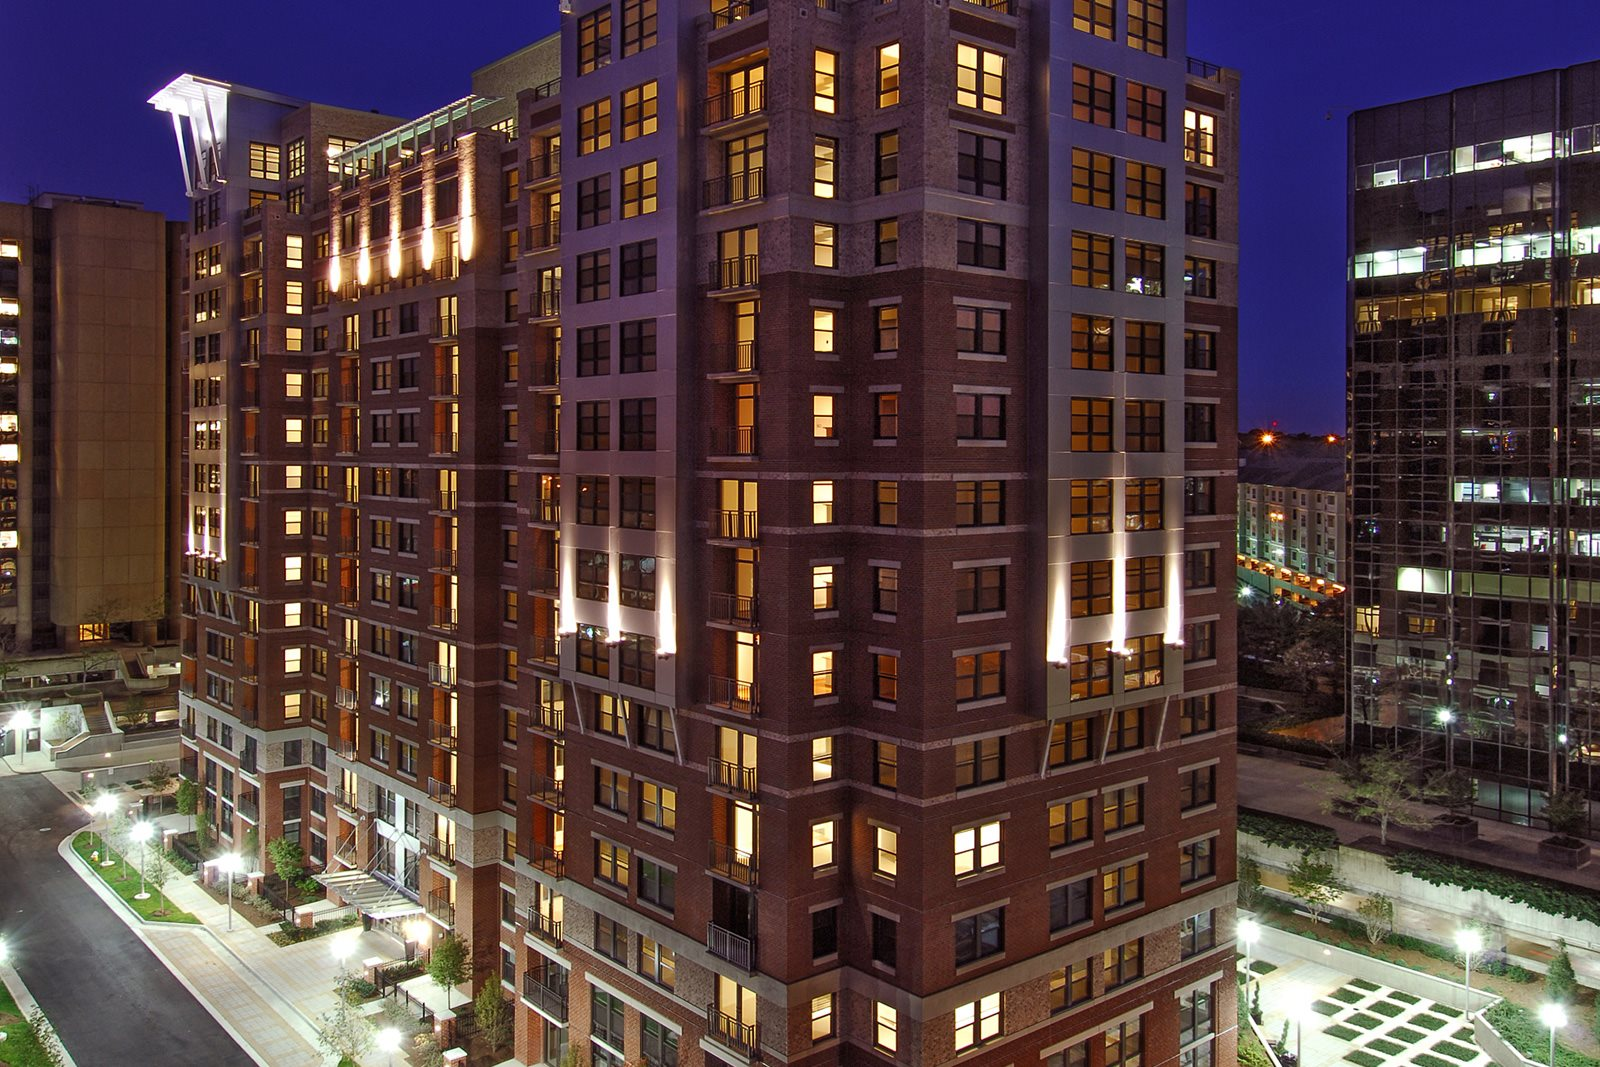 Enjoy the Life of Luxury at Halstead Tower by Windsor, 4380 King Street, Alexandria